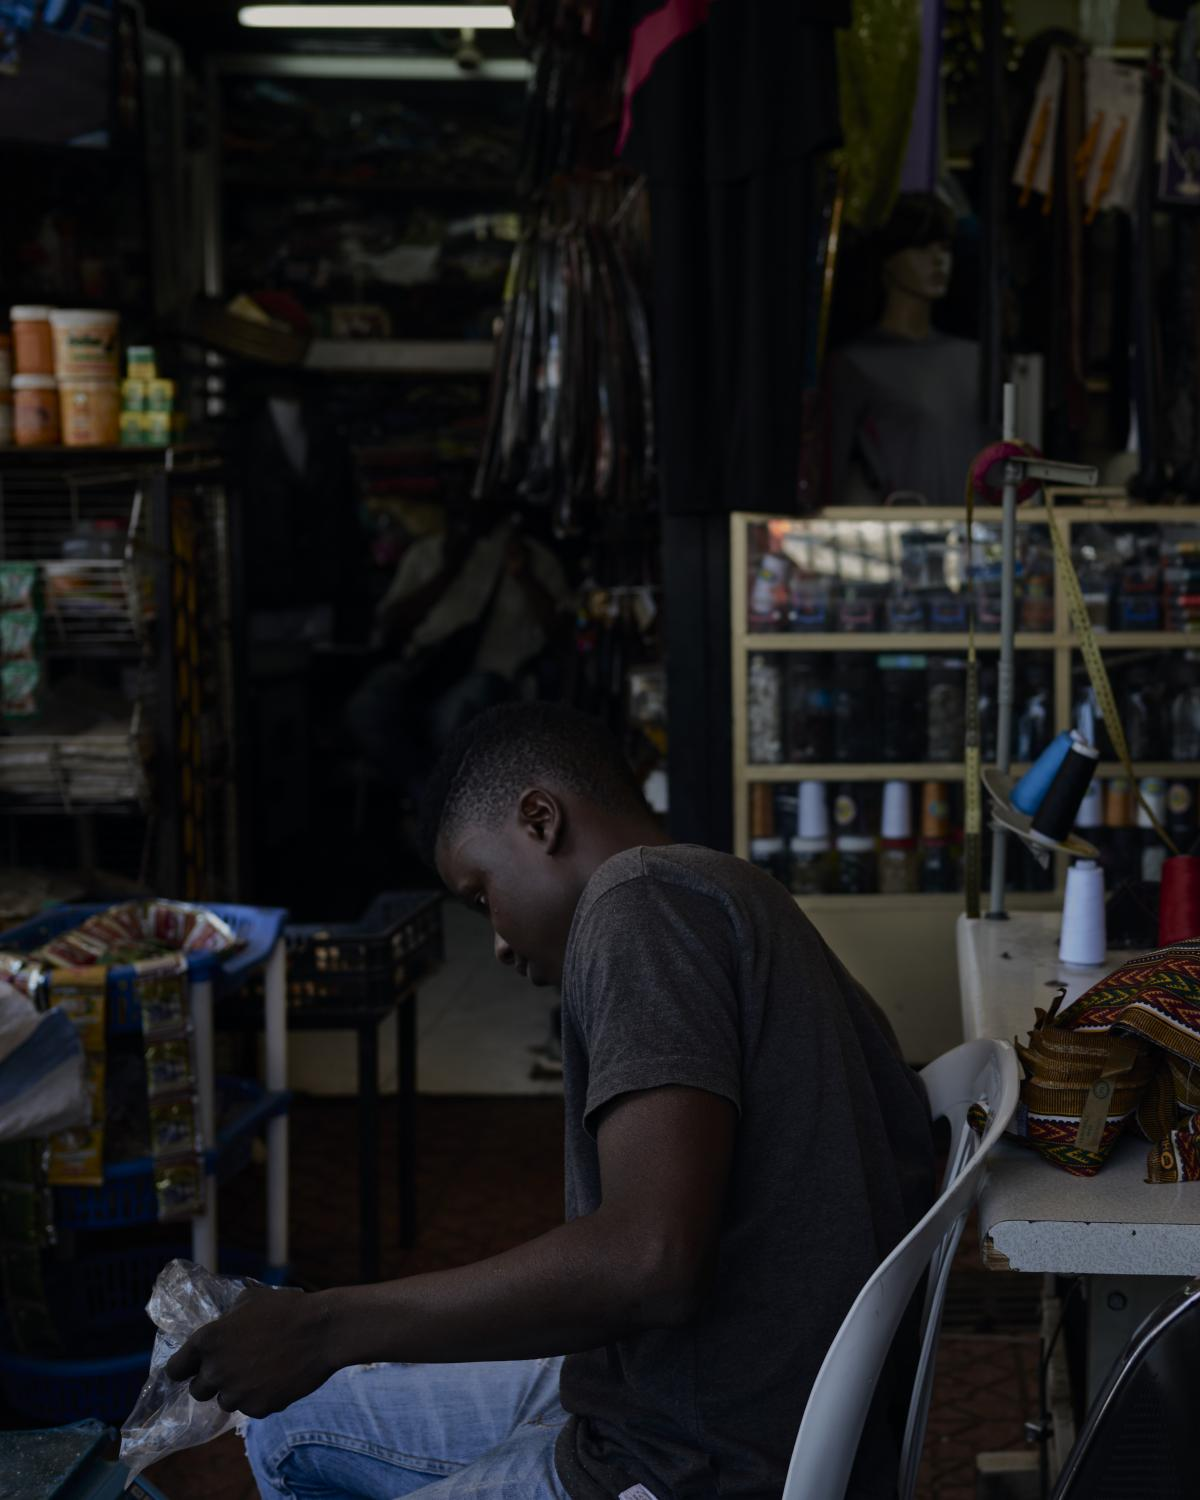 """Alamby, 16yr., explains in an interview: """"My situation is not easy, to have left Guinea so far today, as a child from a low-income family. I did not know the situation in Morocco before coming here. For me, this has been another life. To cross the sea and reach Europe, they ask for a large sum of money, which goes beyond my means. Given my current situation, I think I can get on all by myself. I need two or three years. At the moment, I do not have a good job"""". Casablanca, Morocco, 2019."""